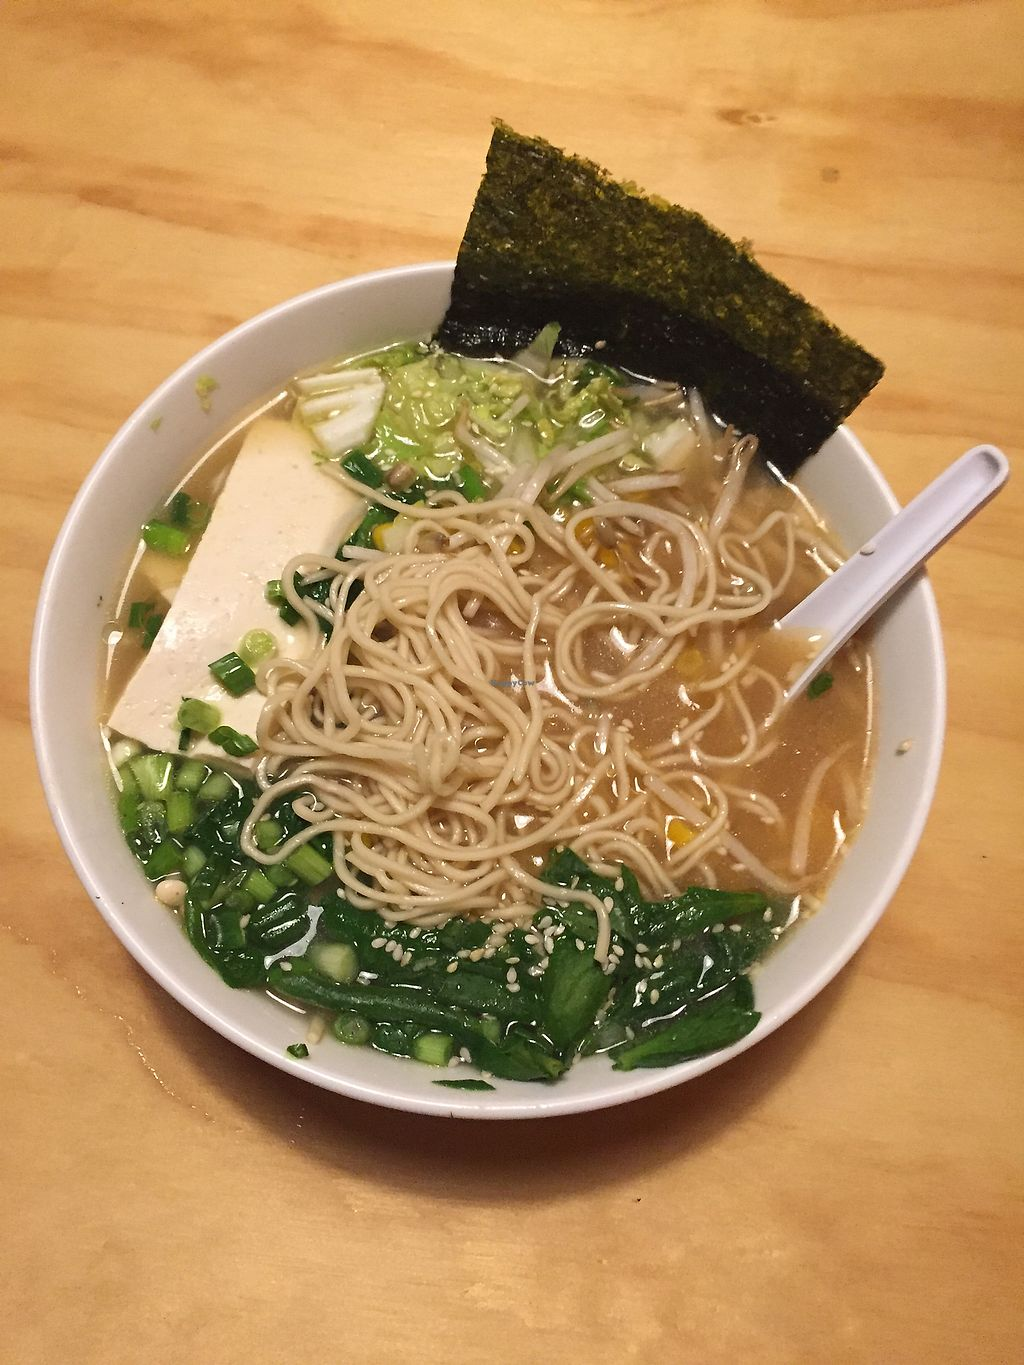 "Photo of Komatsu Ramen  by <a href=""/members/profile/alexis17"">alexis17</a> <br/>Vegan Ramen Bowl  <br/> December 18, 2017  - <a href='/contact/abuse/image/91049/337013'>Report</a>"